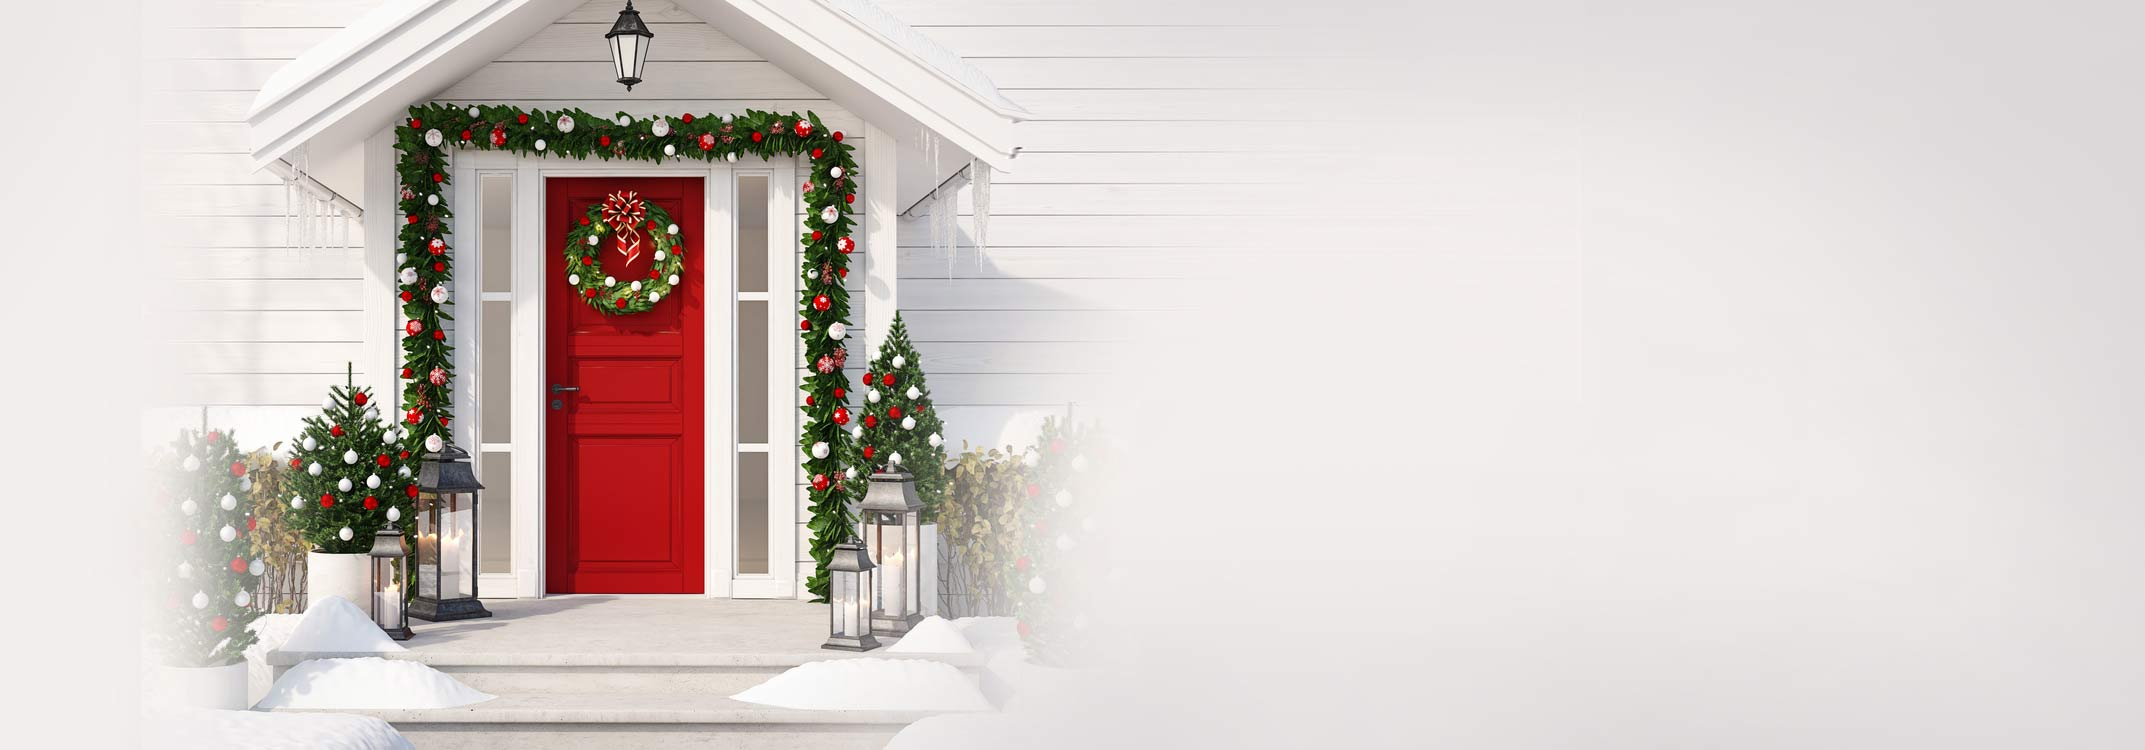 vinyl siding house decorated for christmas with vz hang vinyl siding hooks